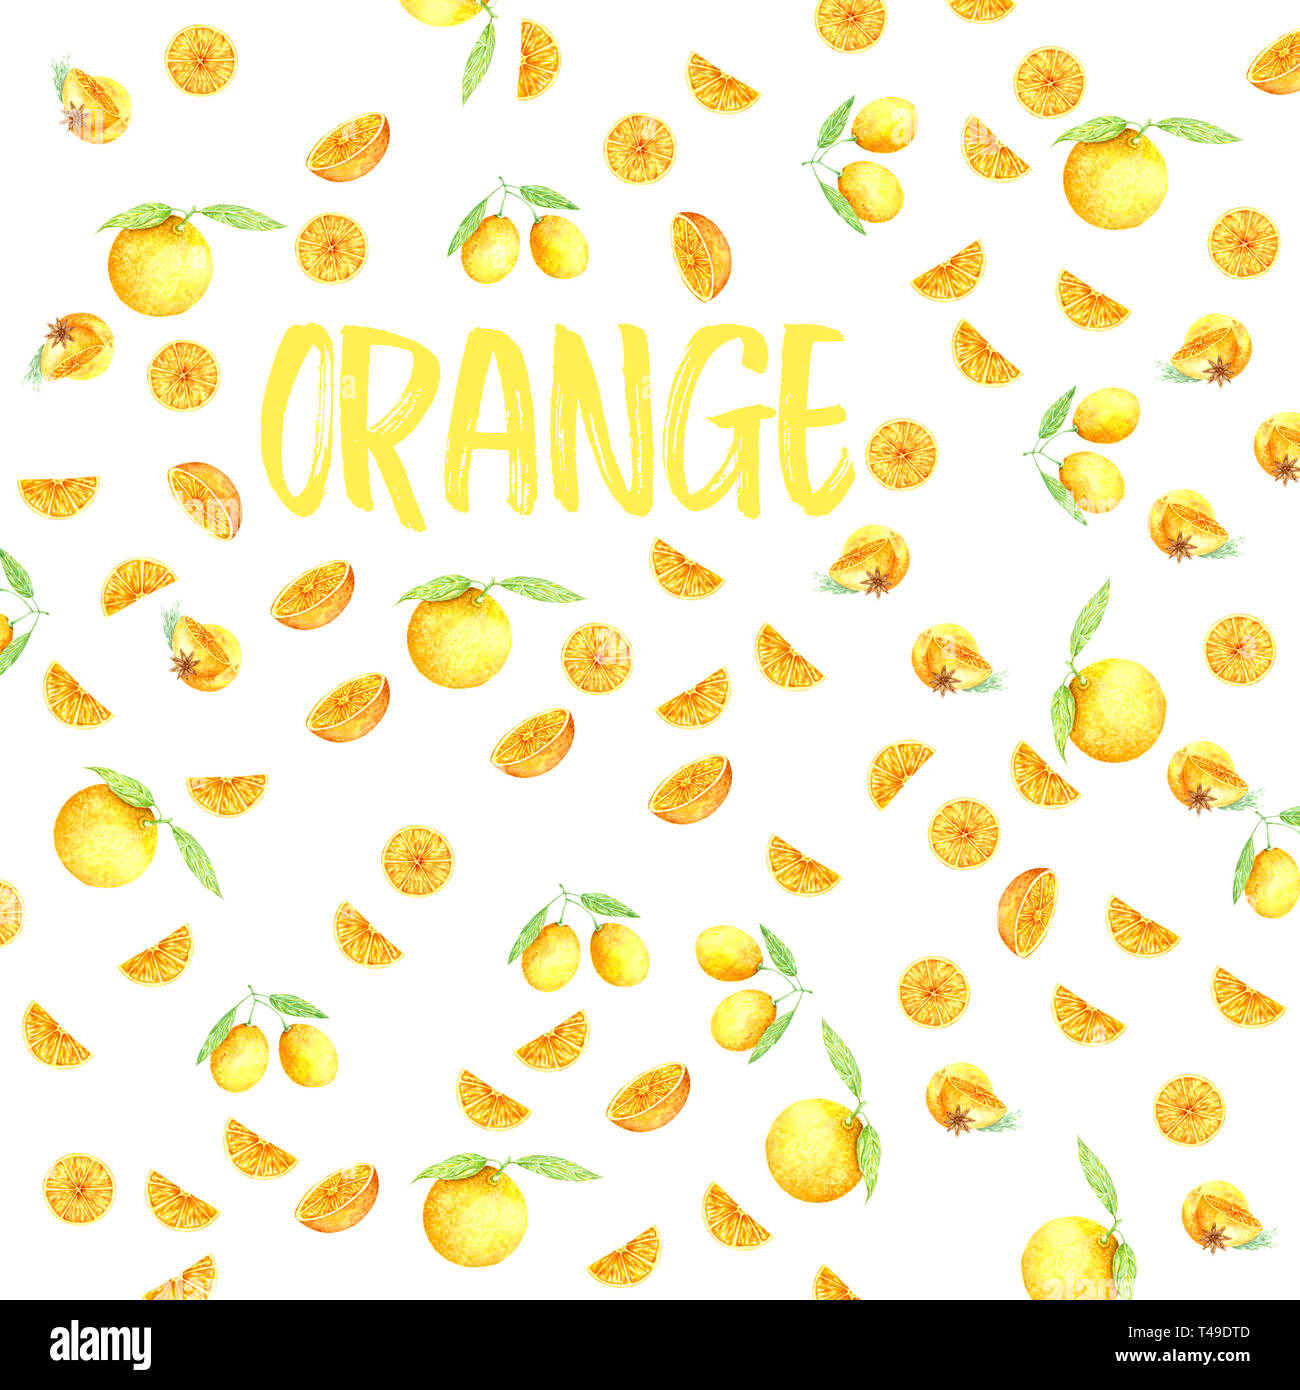 Fruits orange aquarelle. Peinture fraîche illustration couleur d'art dessinés à la main, élément juteux sur fond blanc Photo Stock